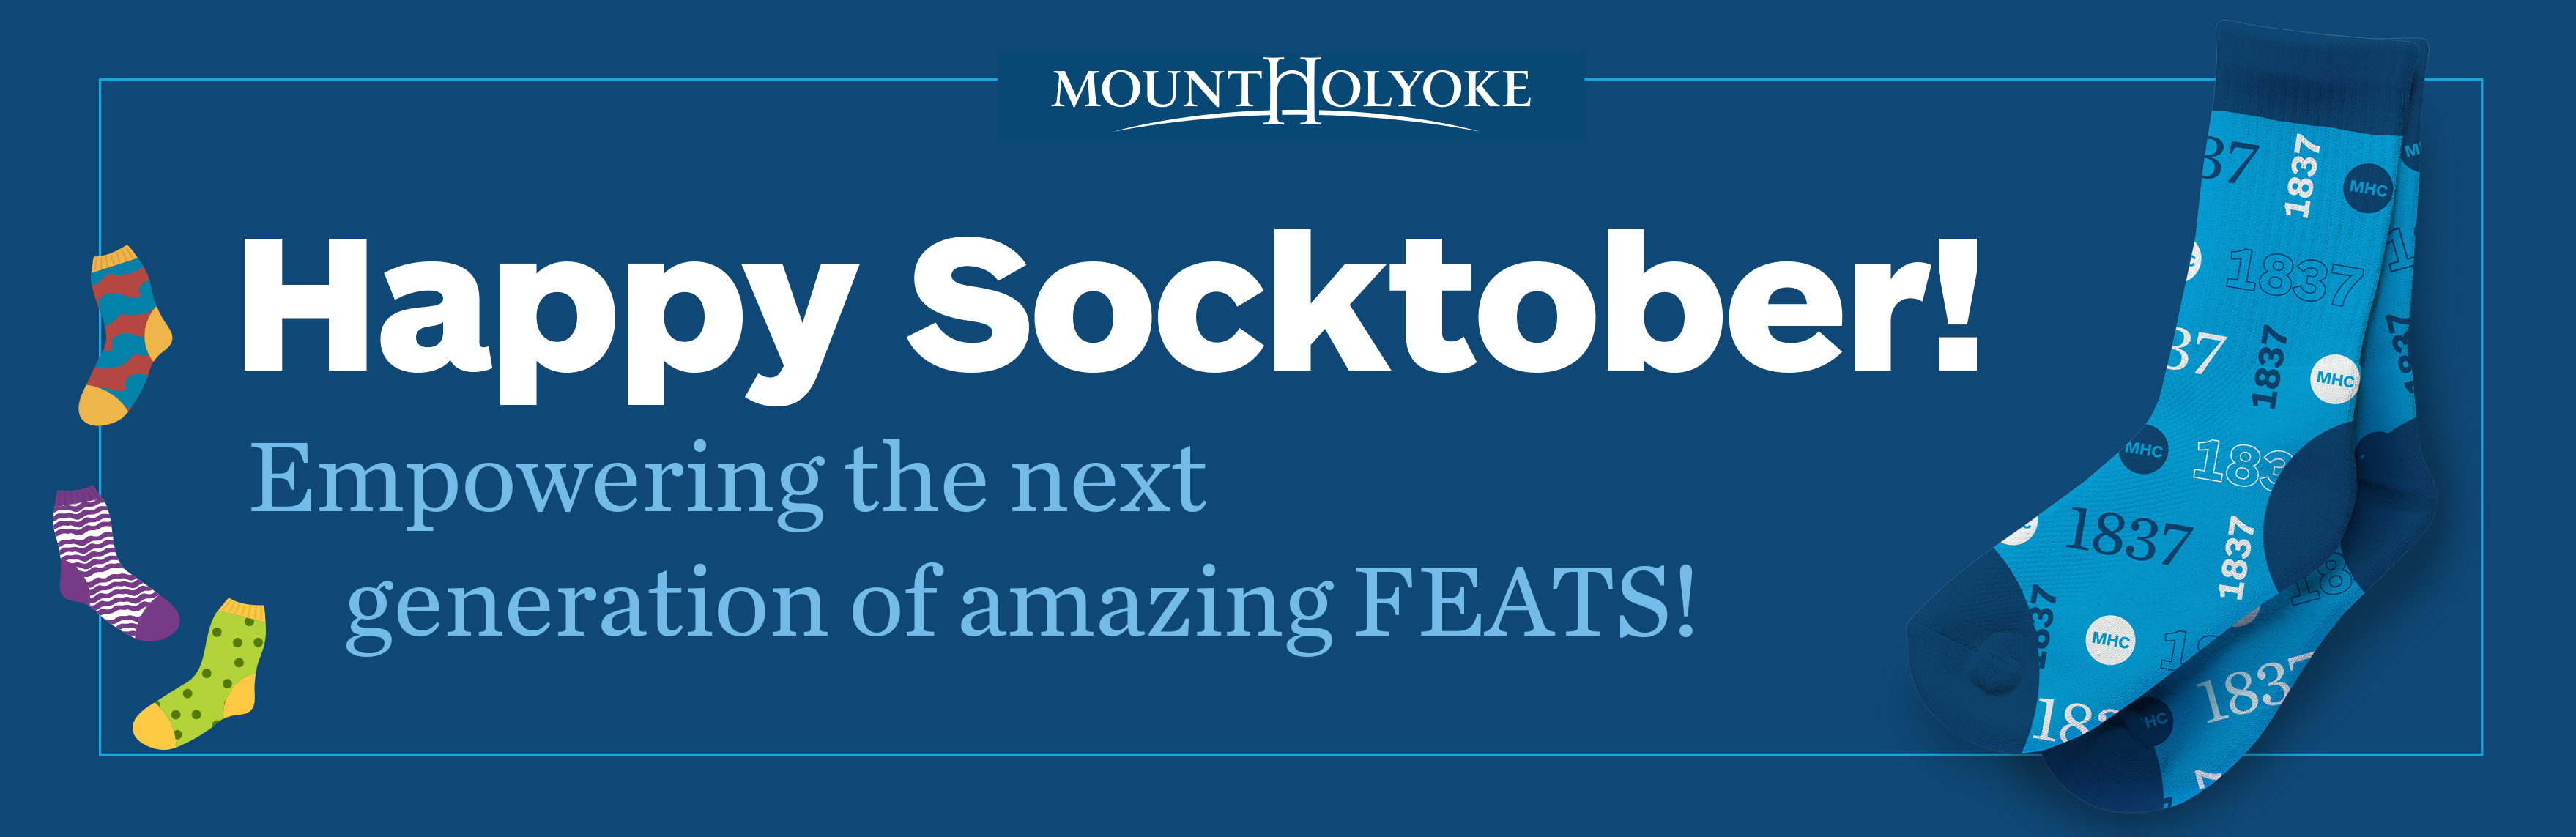 Happy Socktober! Empowering the next generation of amazing FEATS!